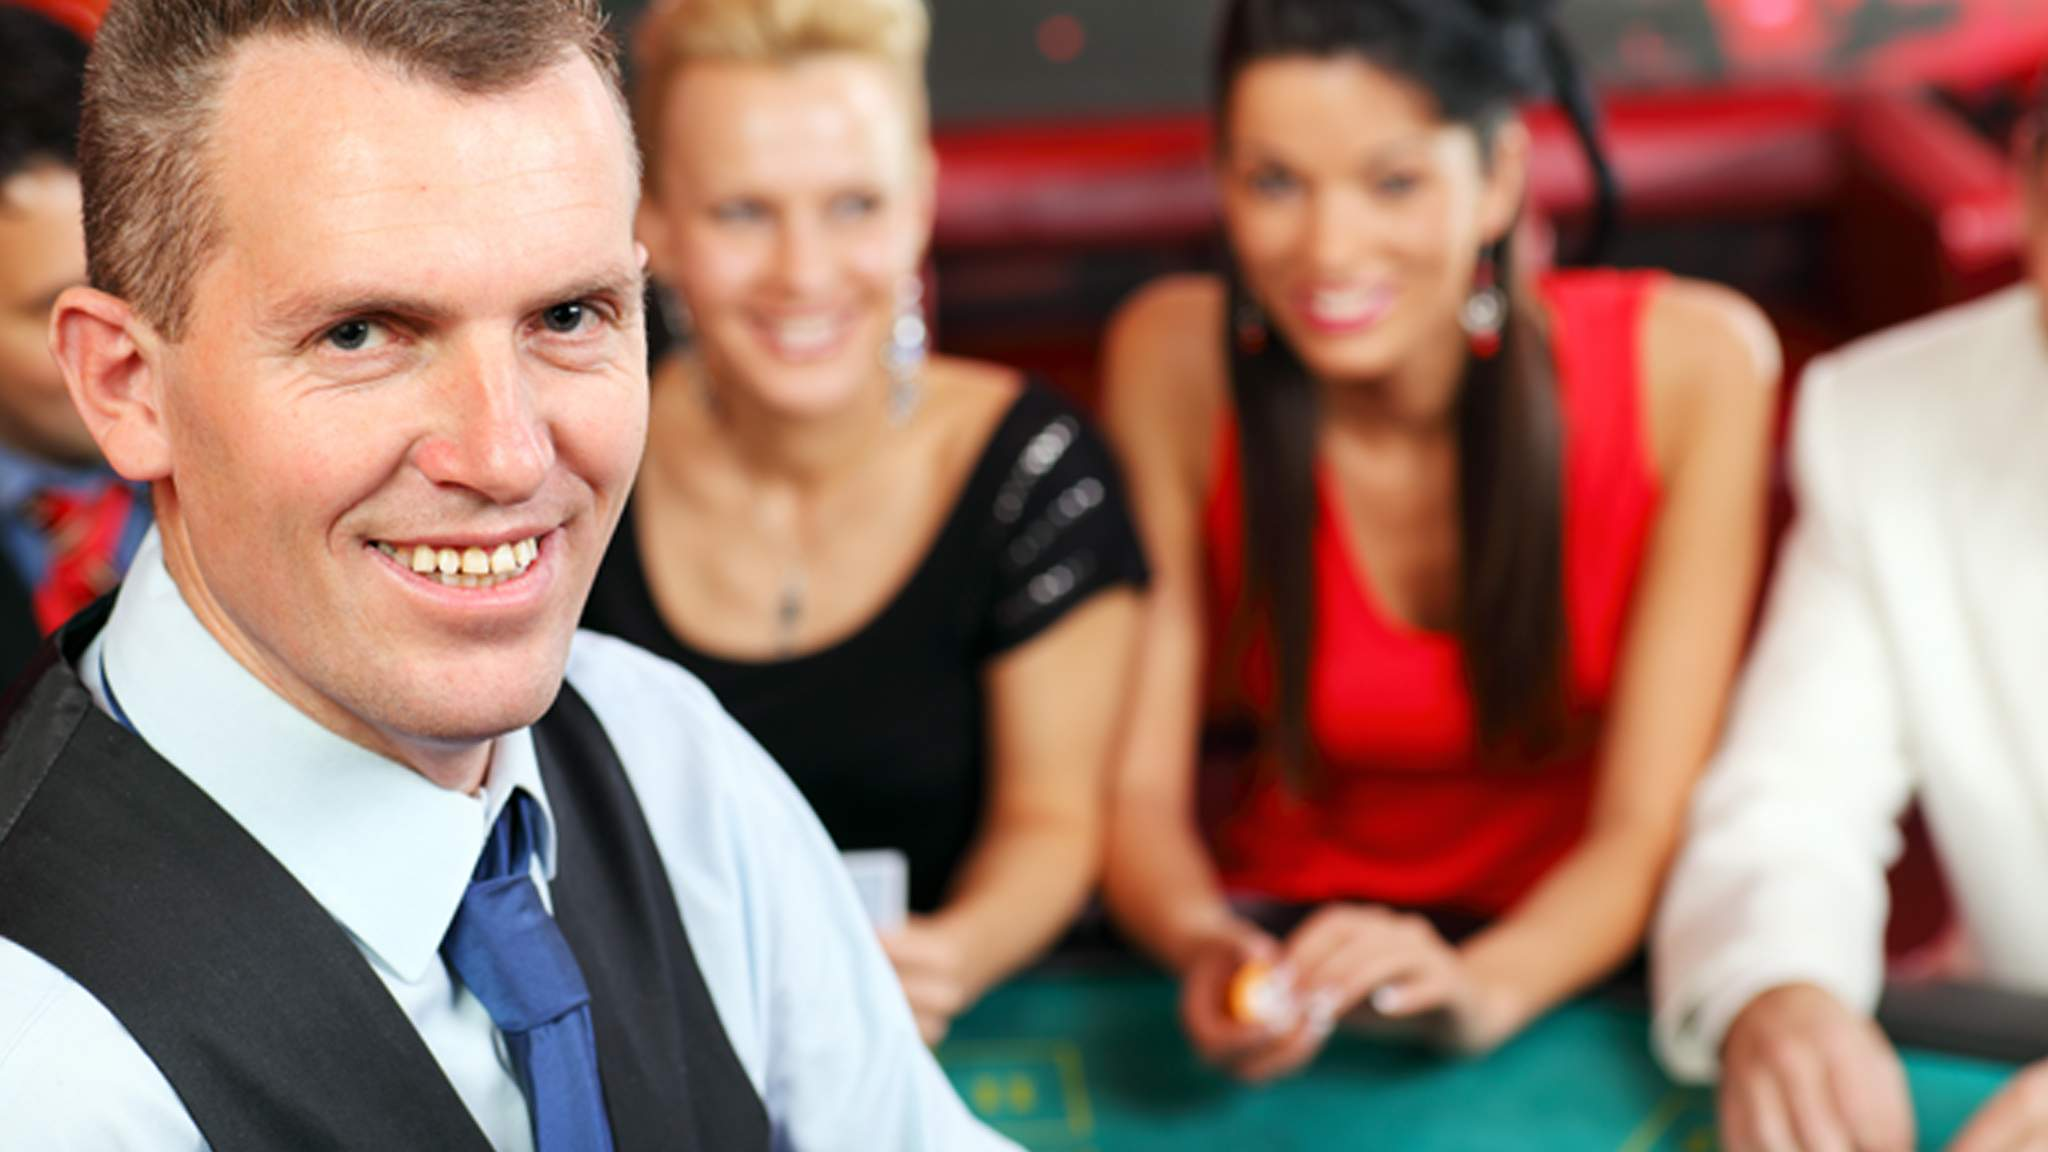 Casino Worker at a gaming table